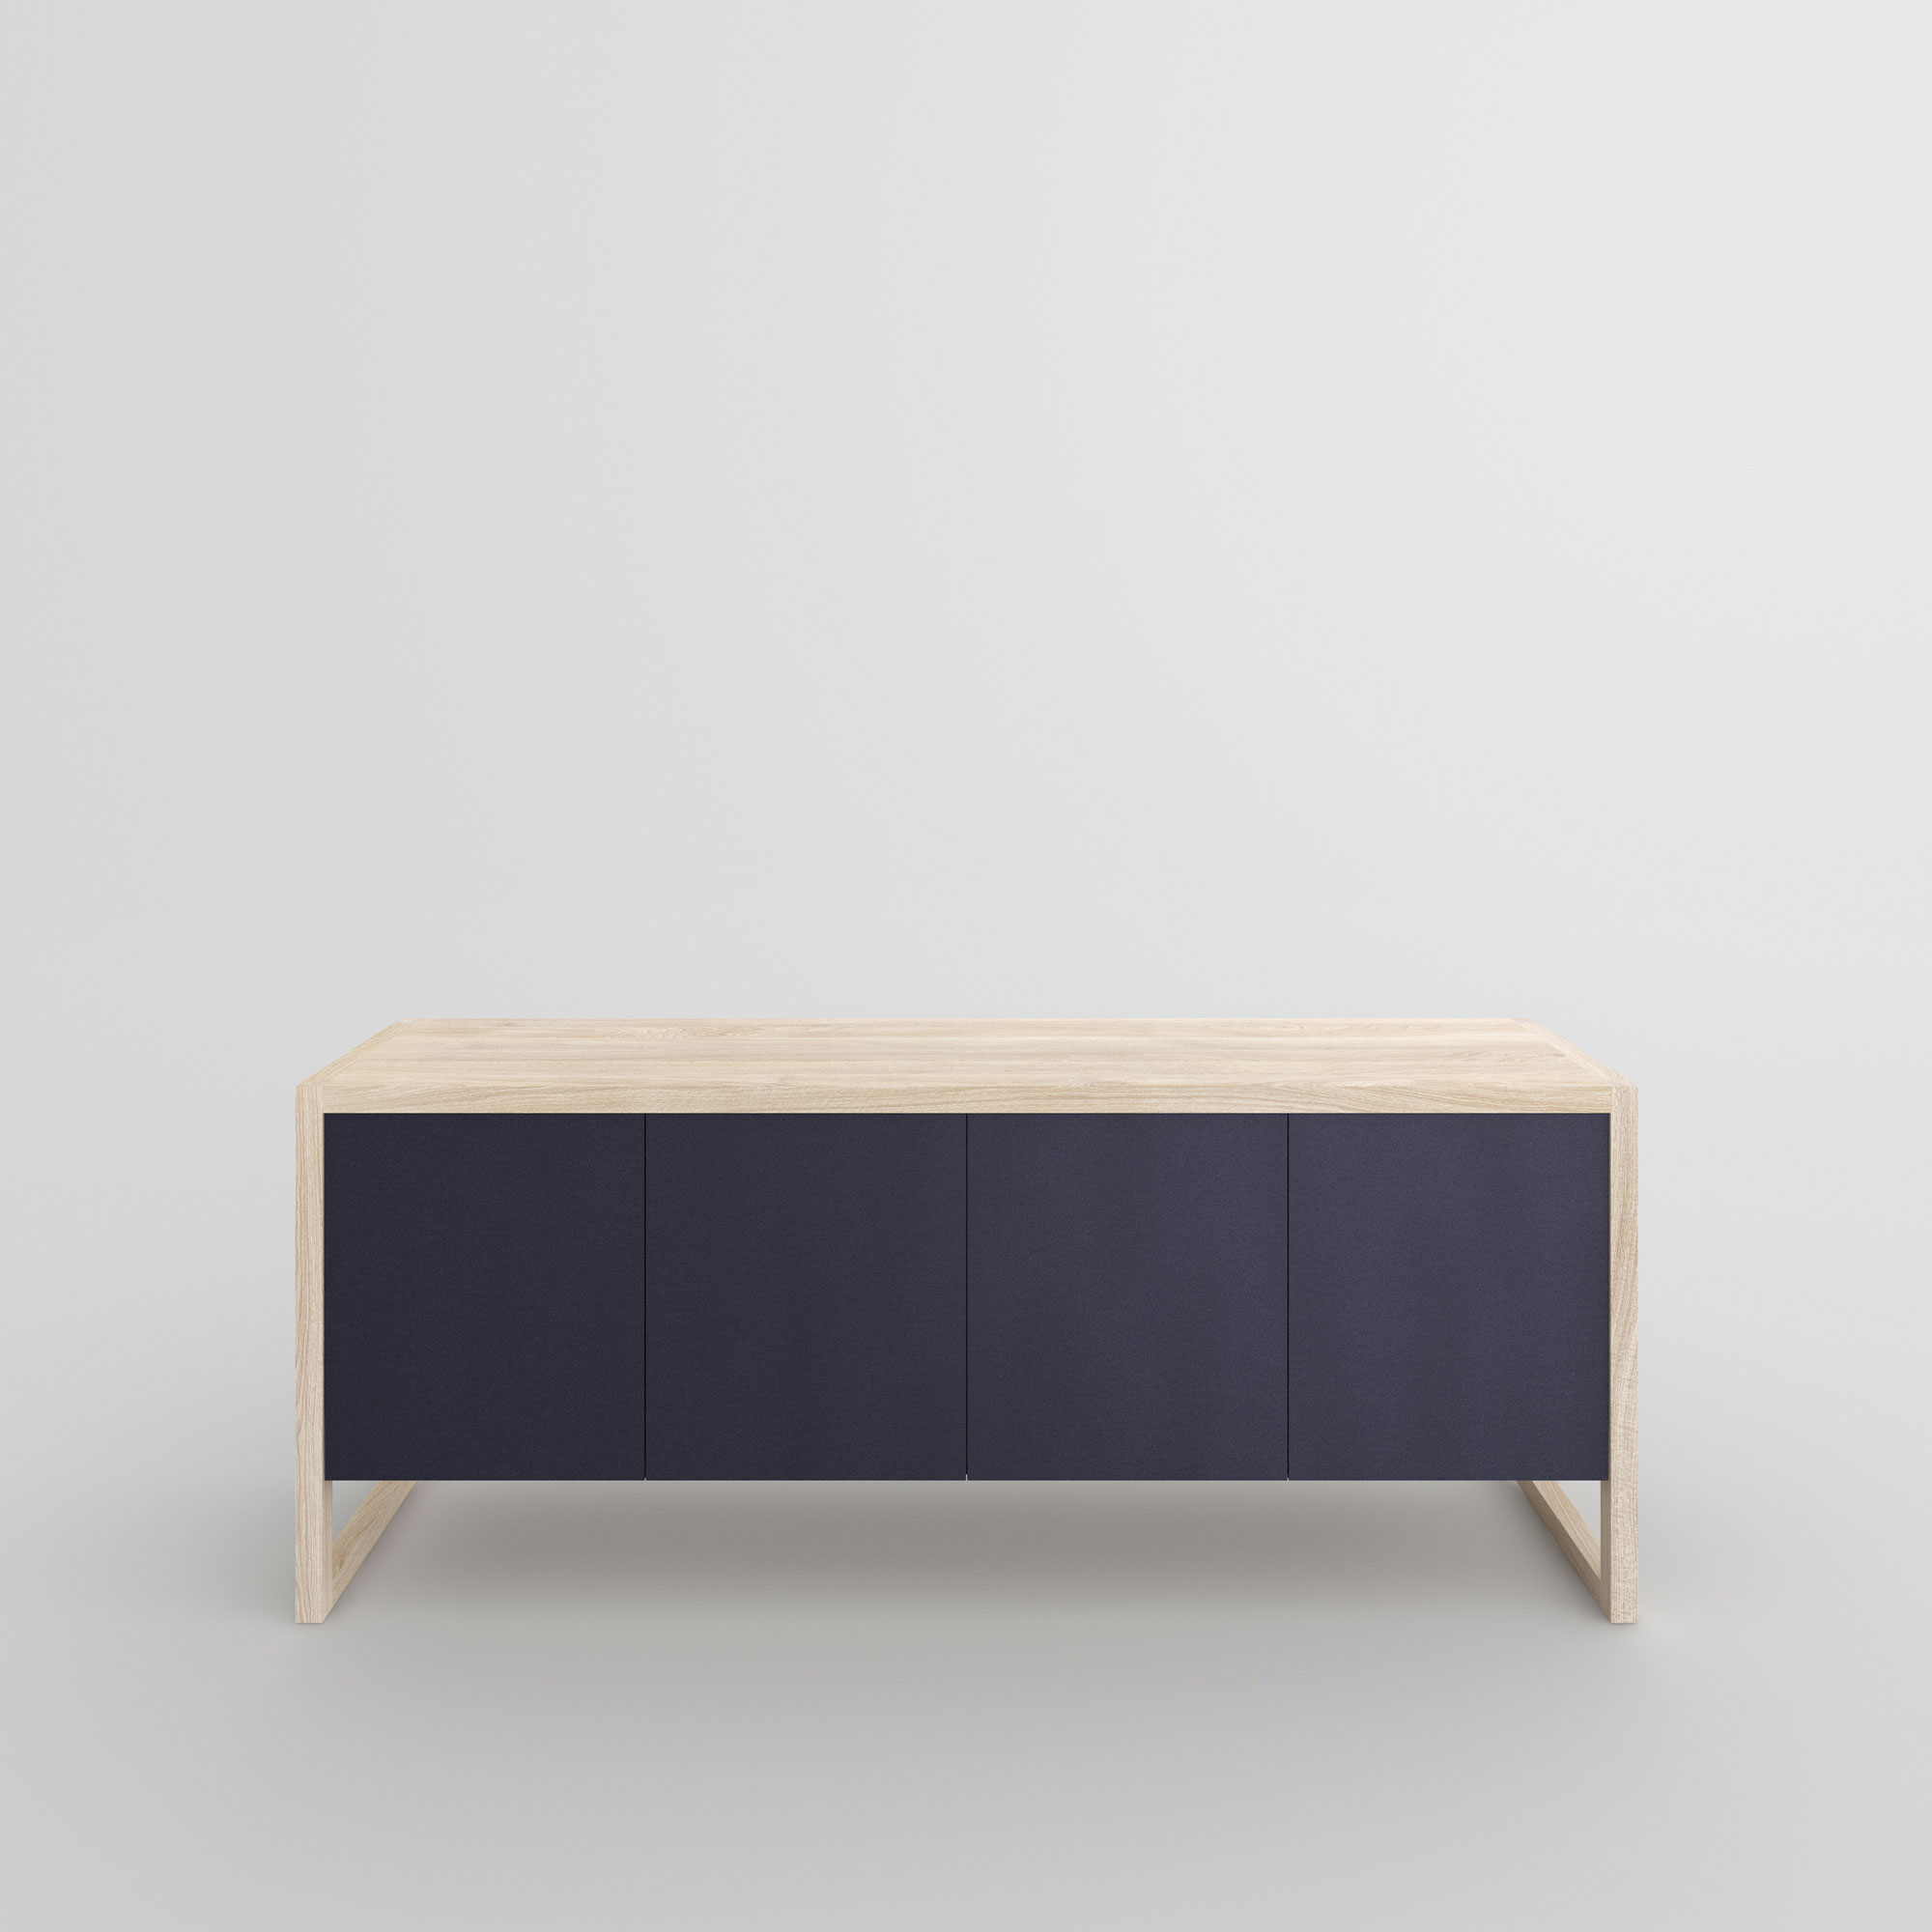 BIO-MDF Wood Sideboard SENA cam3 custom made in solid wood by vitamin design